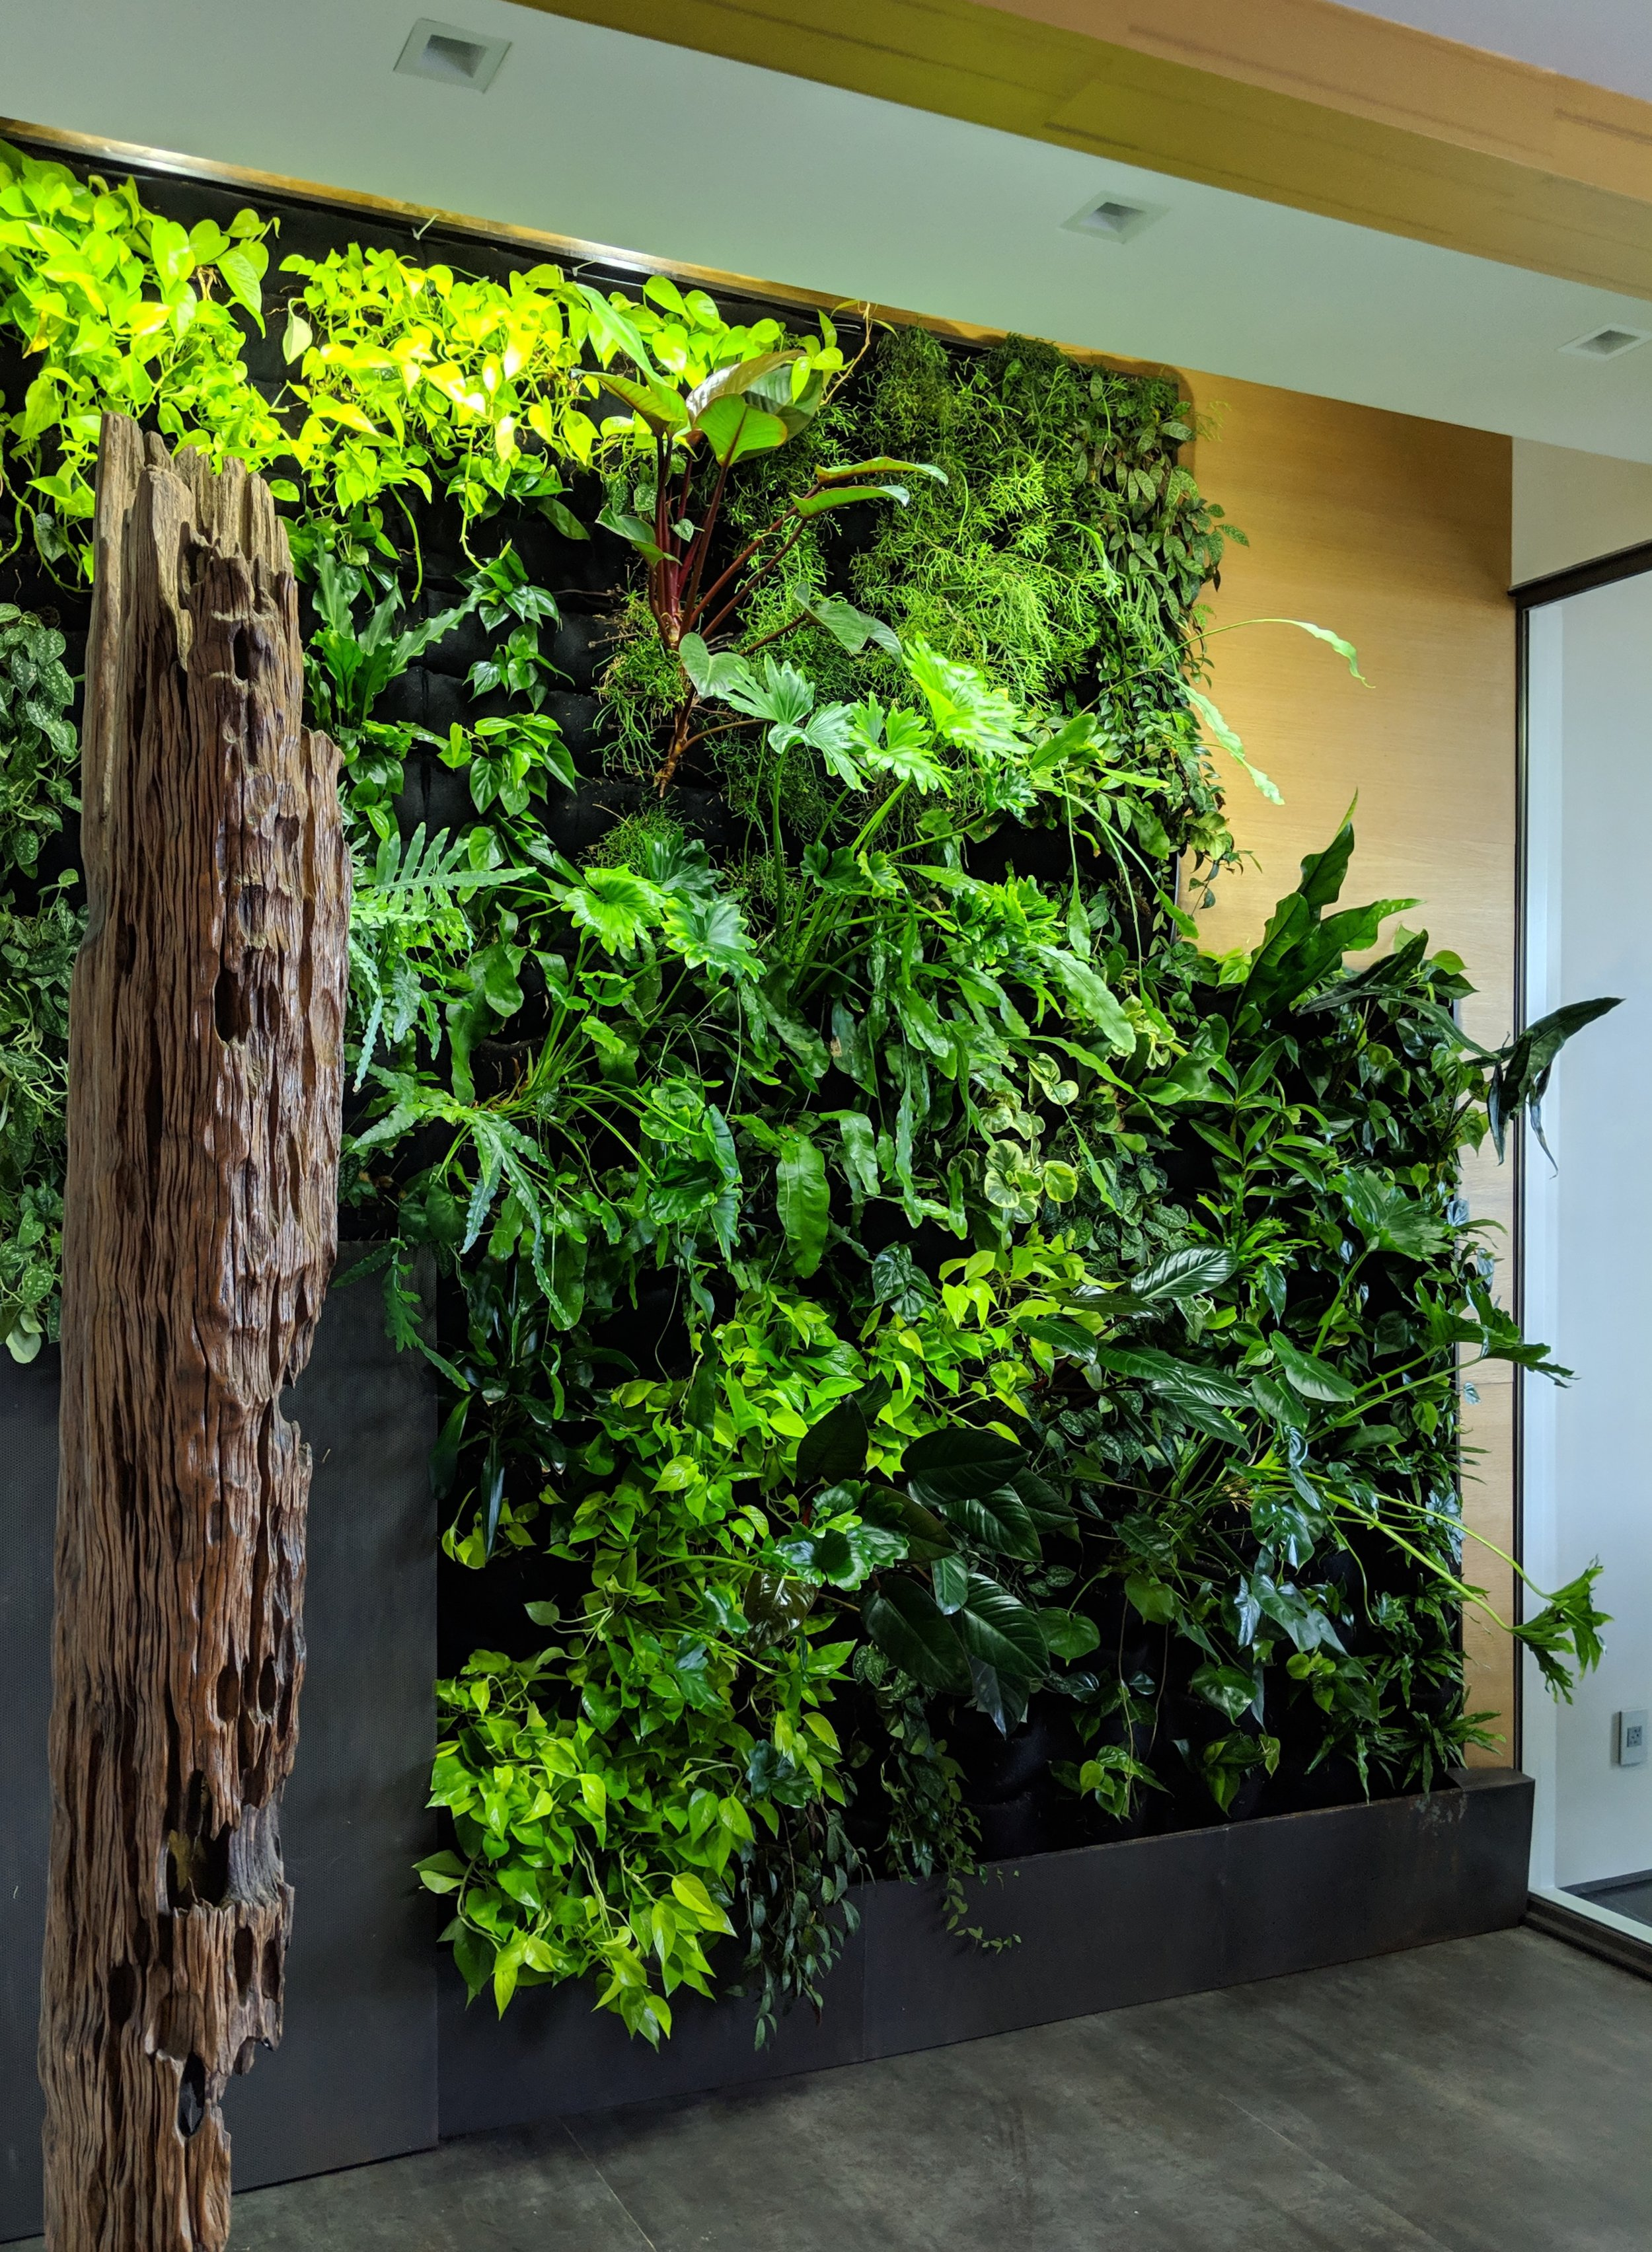 Like a window into a jungled forrest this living wall was built into the design of this architectural home.